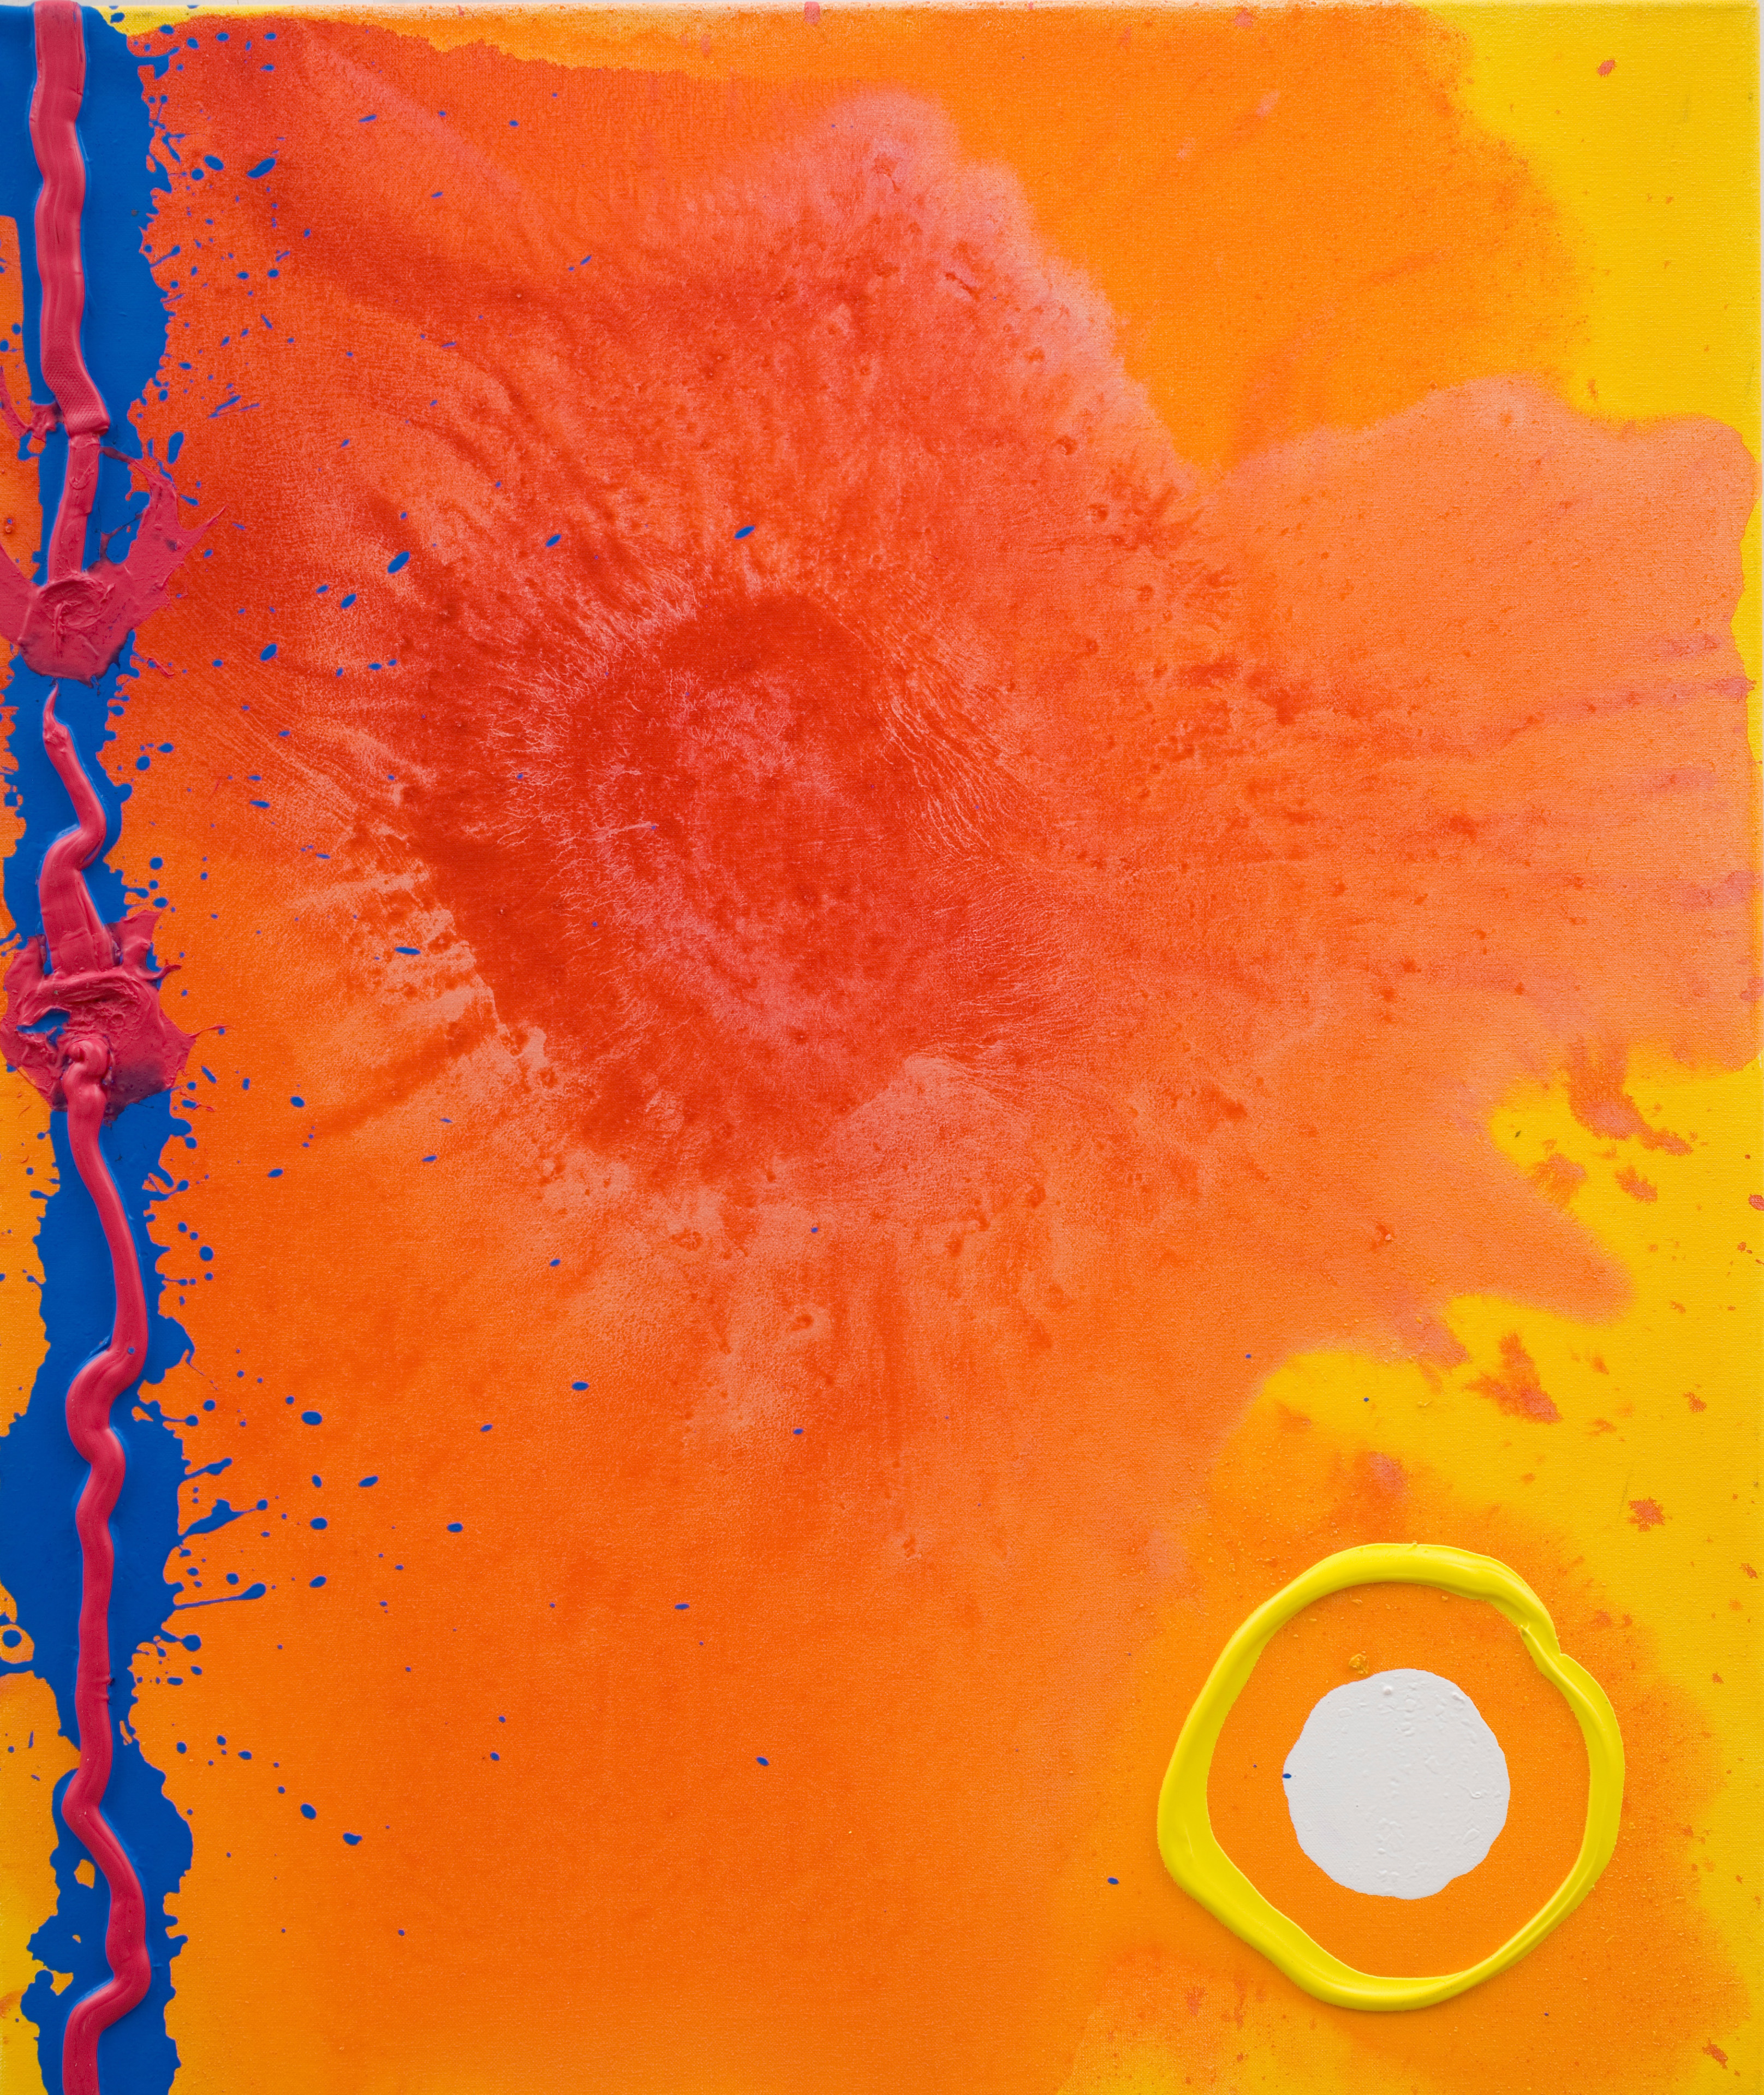 Antiques News - Antique Fair - Holland Murray Fine Art - 'Hope Morning 27.04.07' by John Hoyland RA, acrylic on canvas, £24,000.